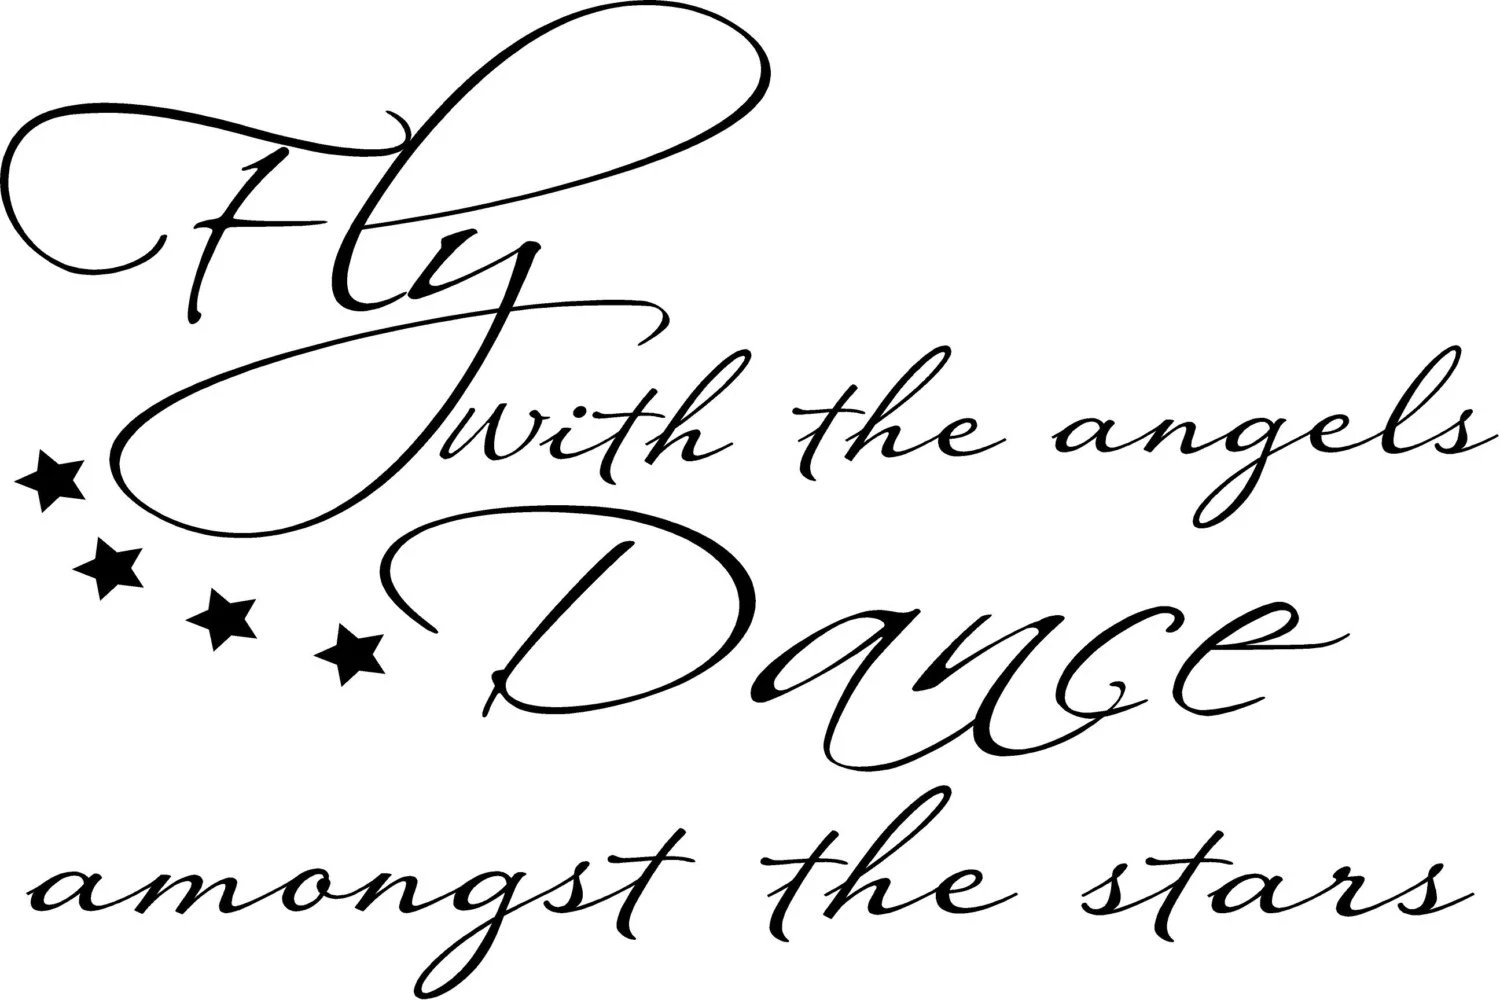 Fly with the angels dance amongst the stars 23H x